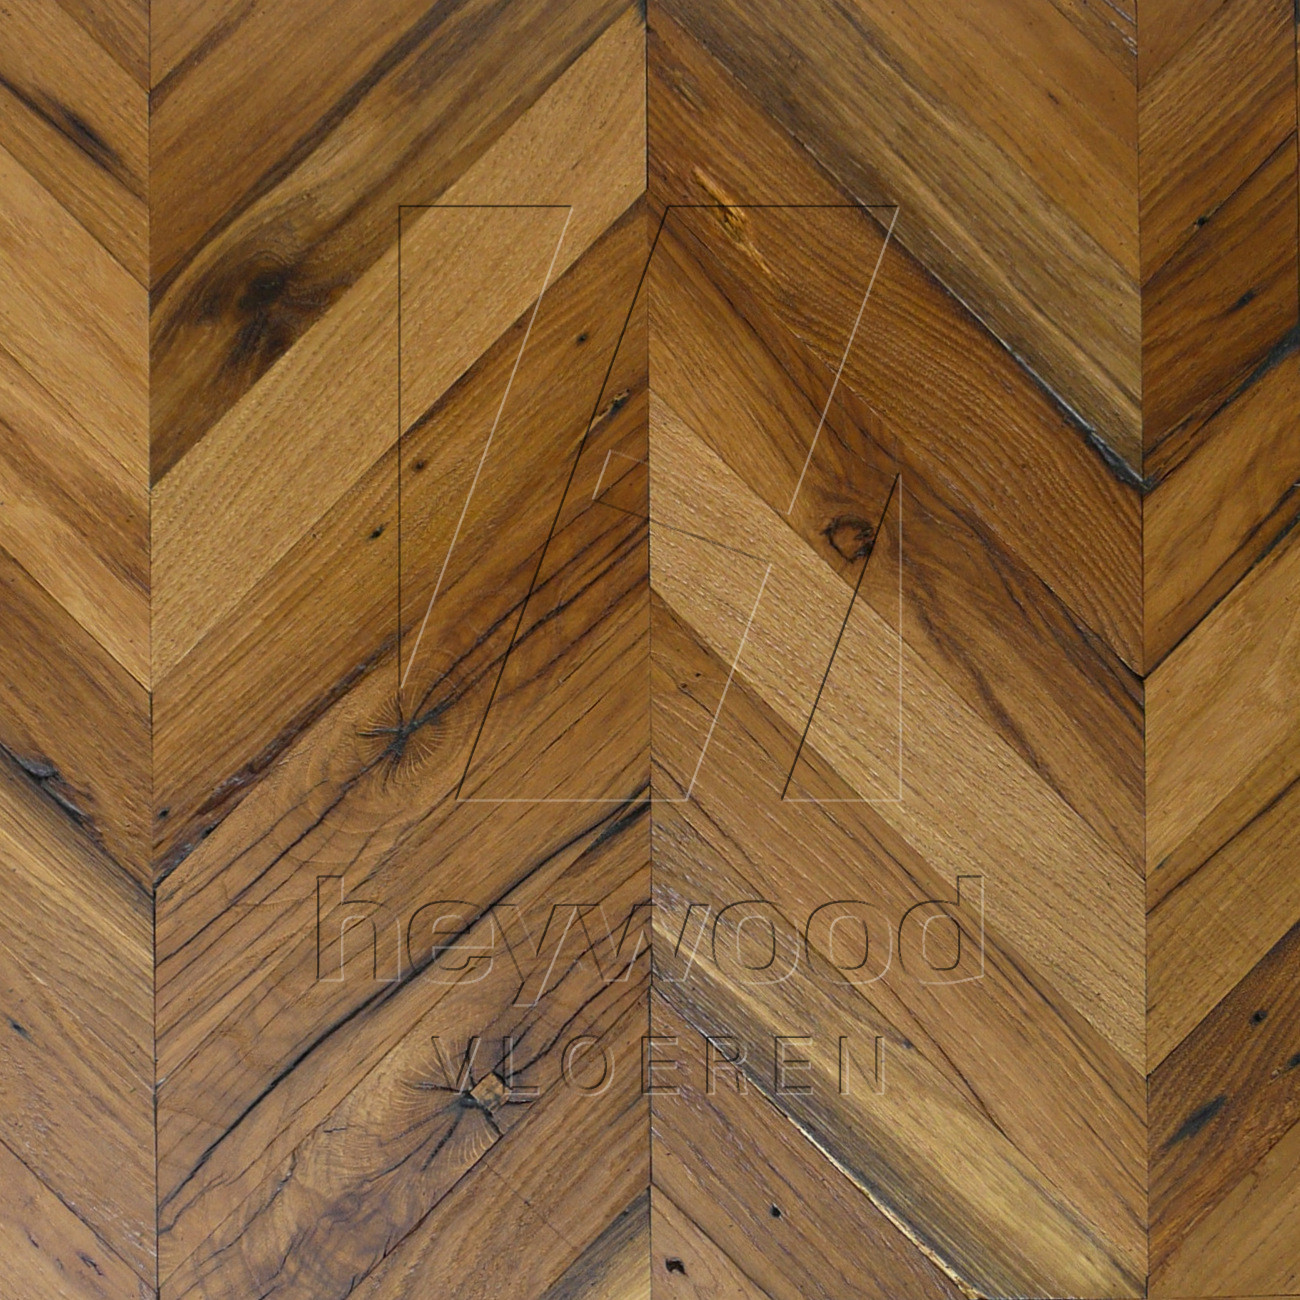 Provence Osmo OIled Reclaimed Oak in Chevron of Pattern & Panel Floors